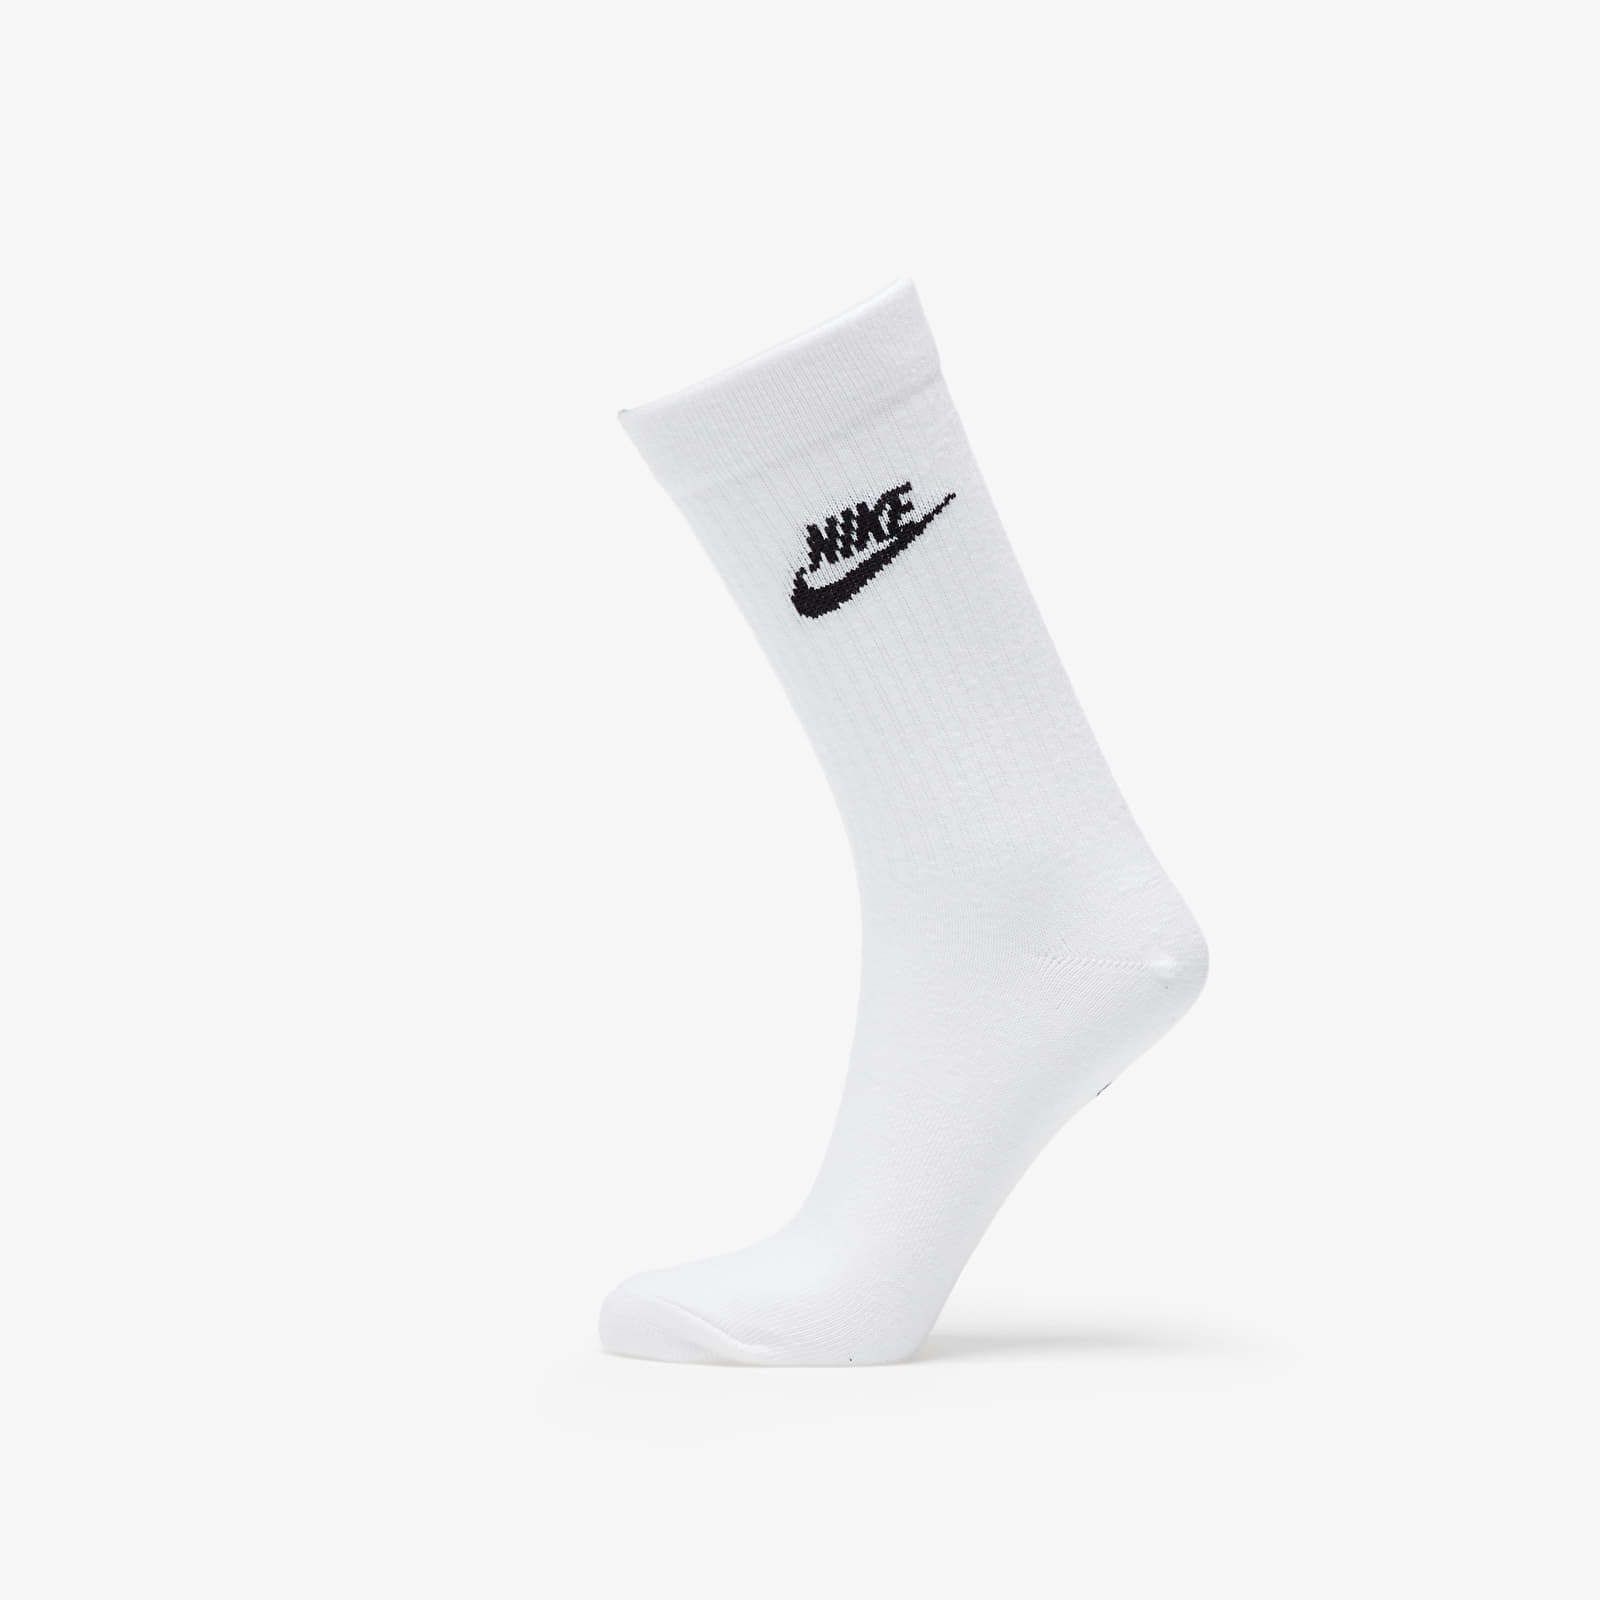 Socks Nike Sportswear Everyday Essential Crew Socks (3-pack) White/ Black